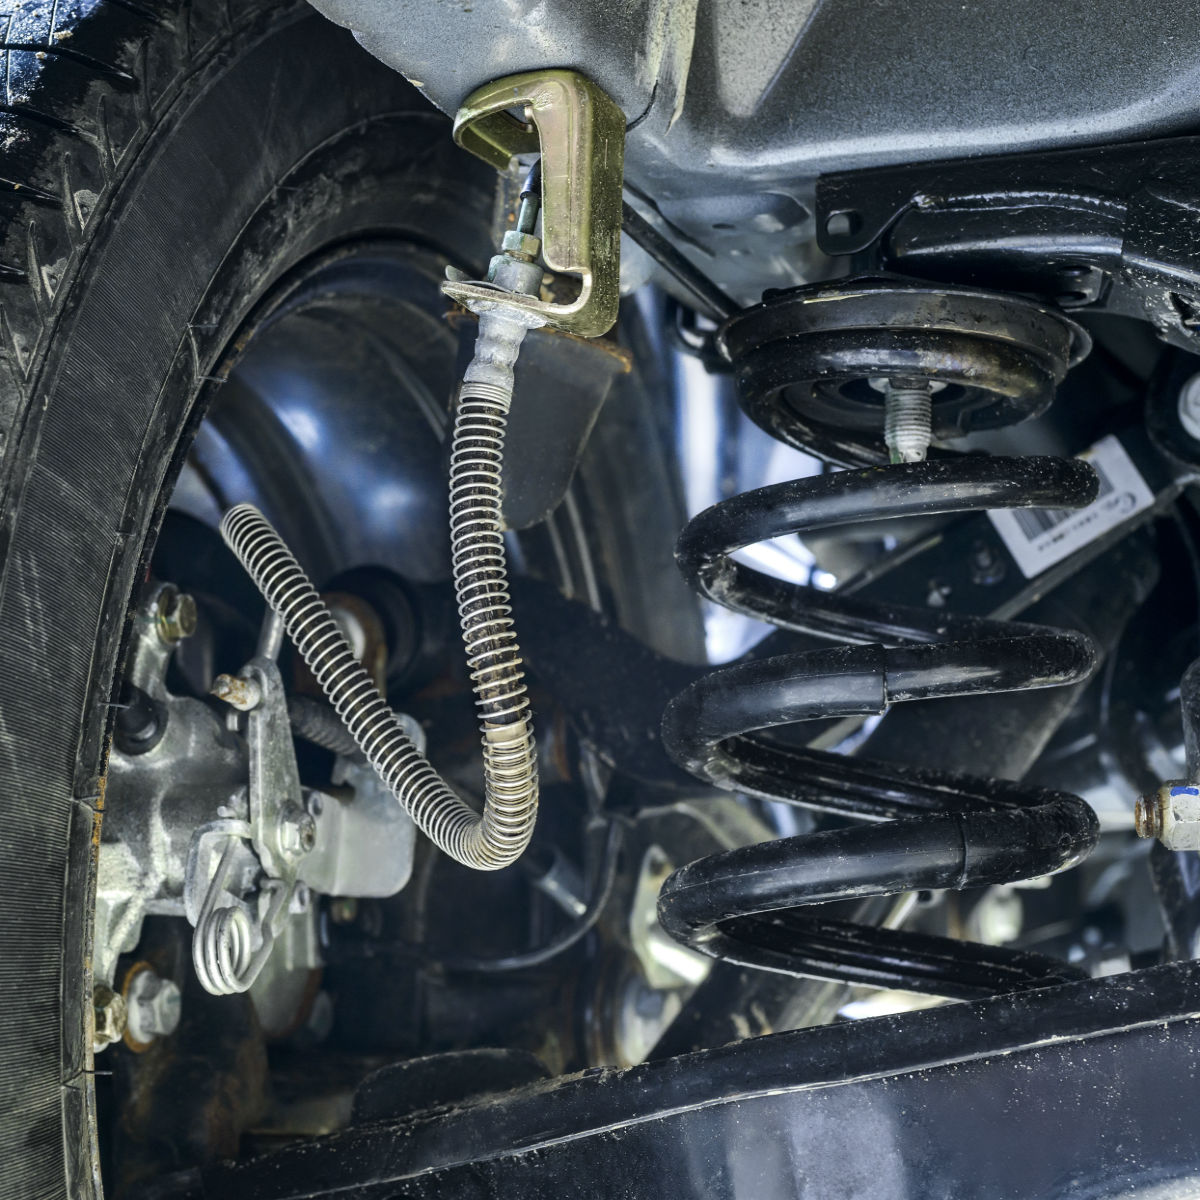 Front Strut Replacement Cost >> Suspension Spring Replacement